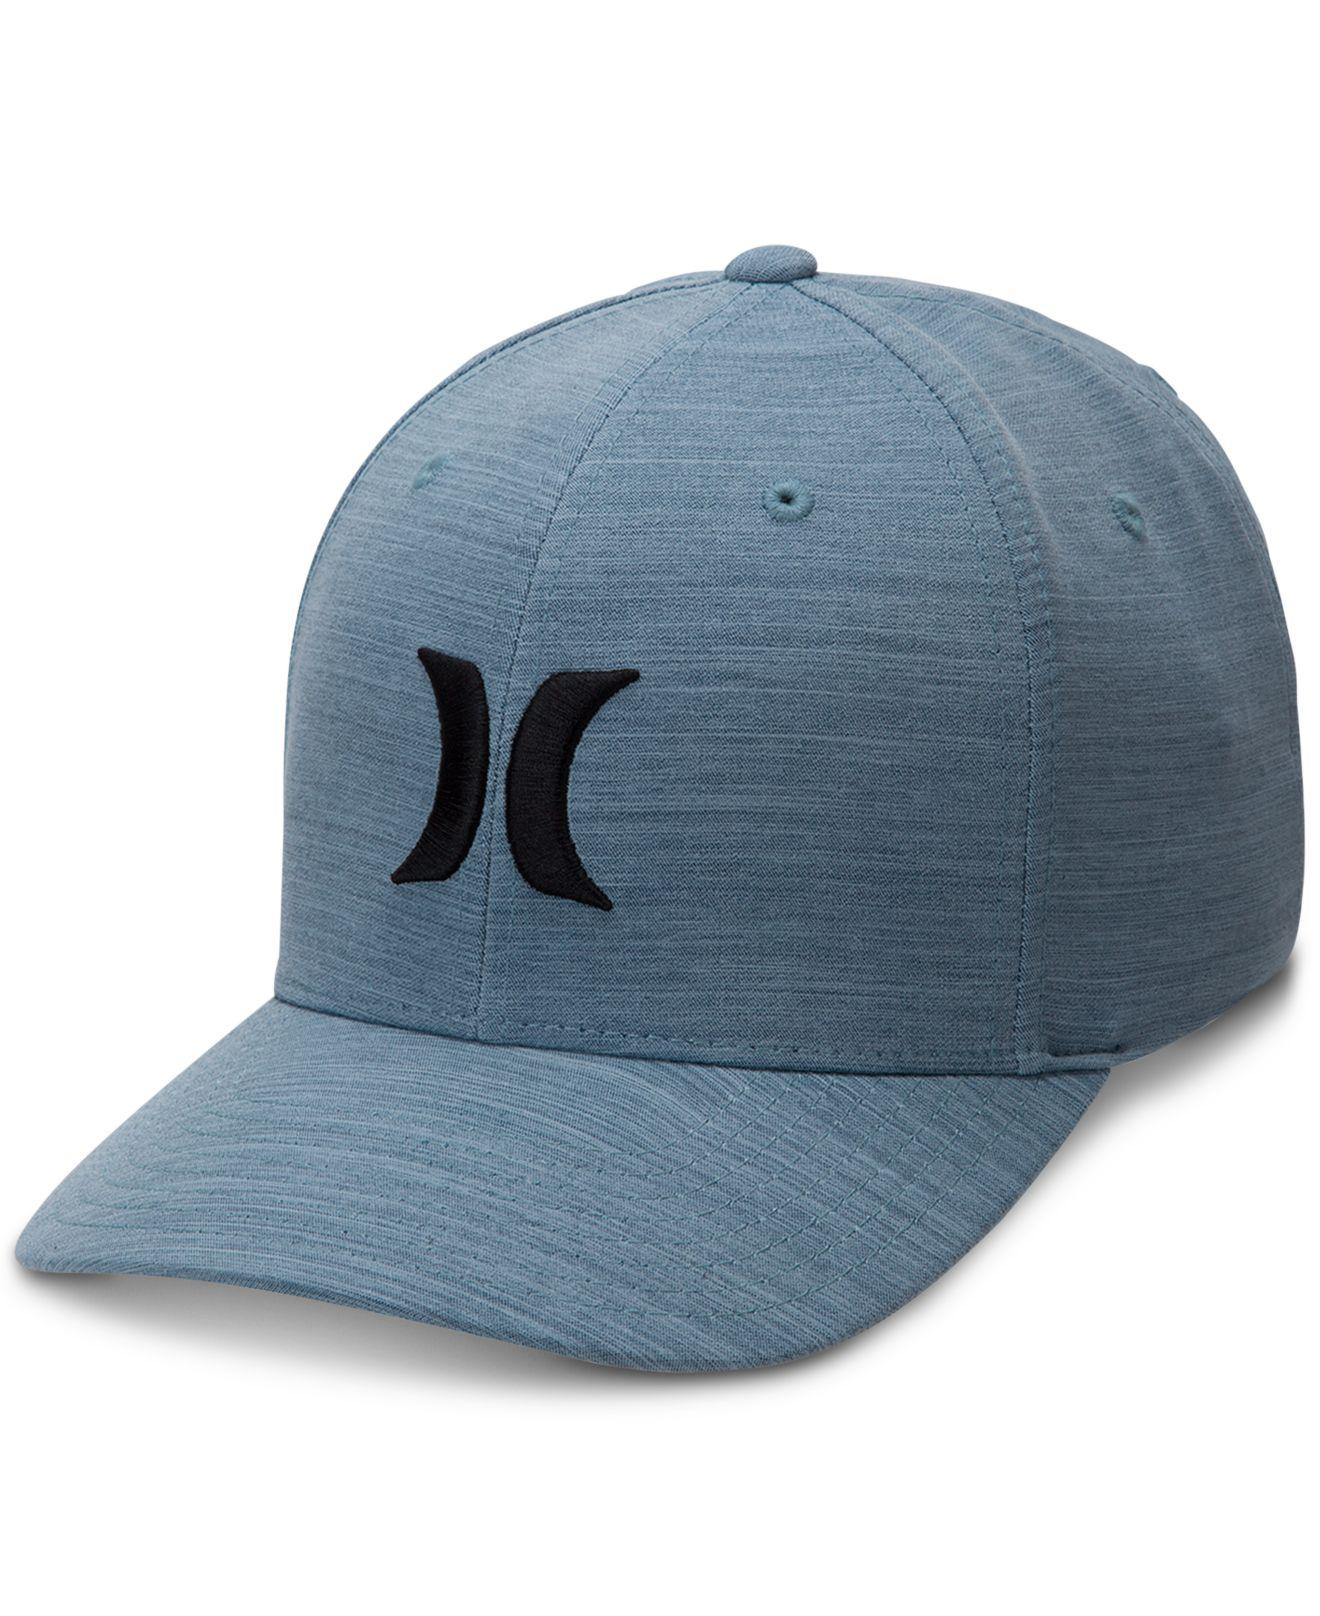 a6d24bed87577 Lyst - Hurley Dri-fit Stretch Performance Cutback Hat in Blue for Men